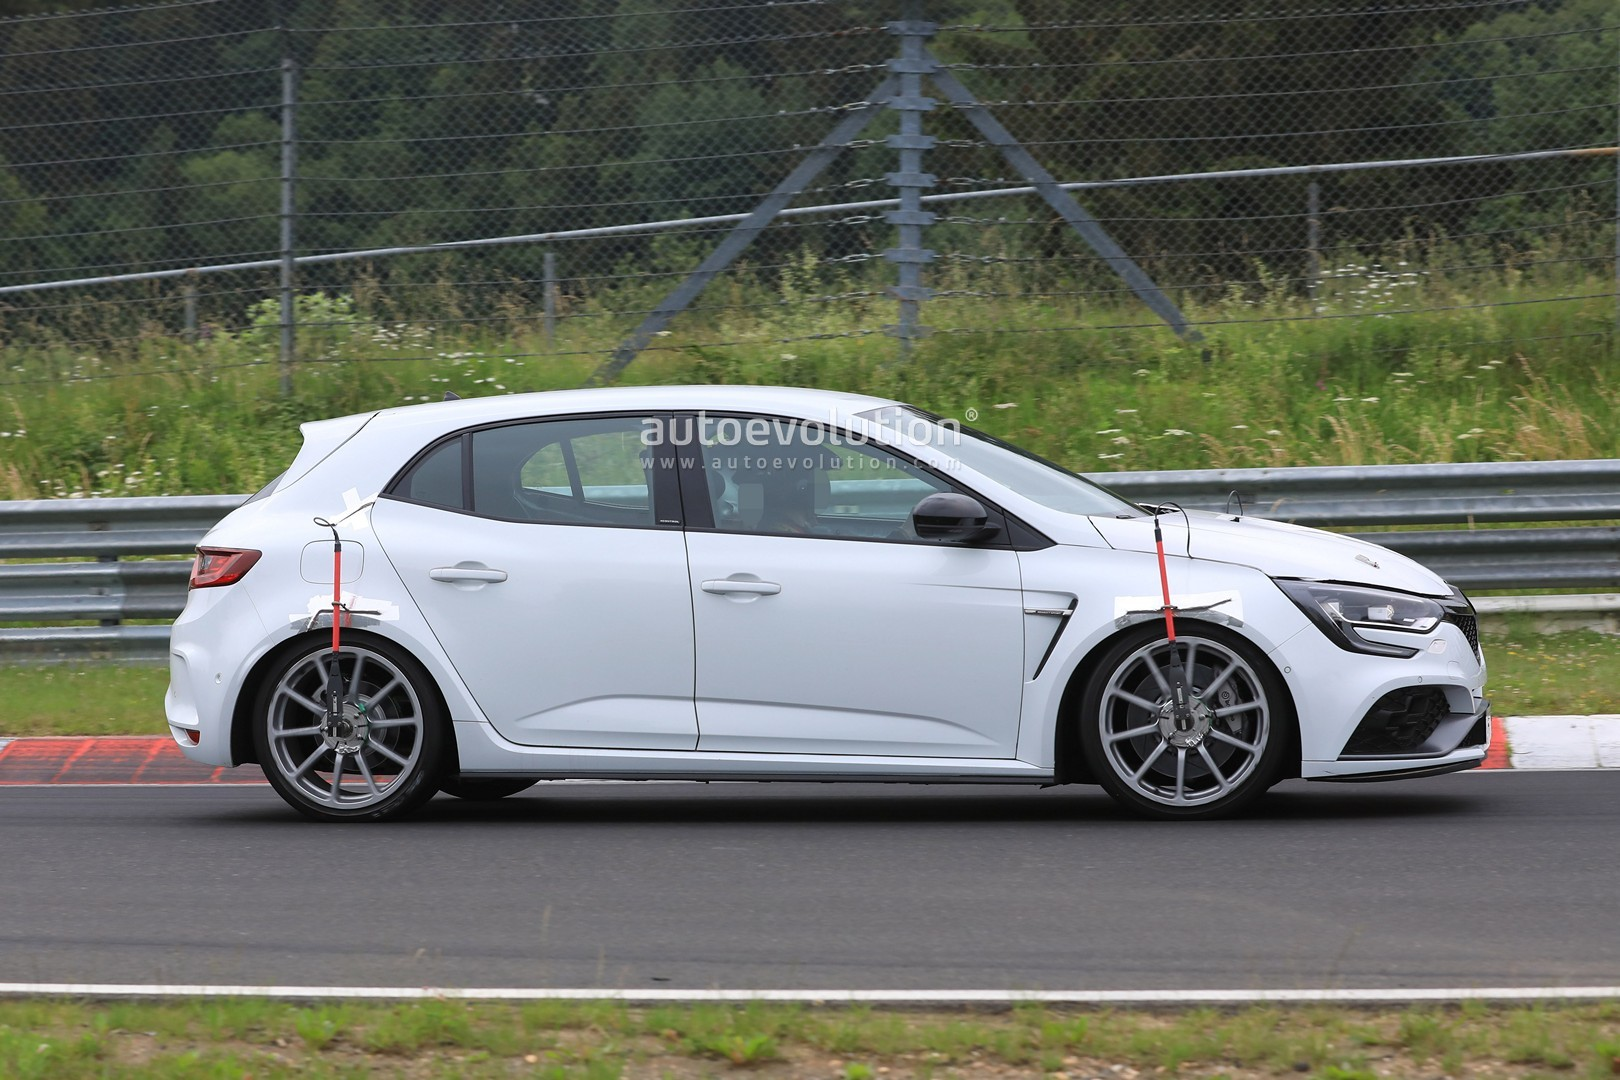 2019 megane rs trophy spied at the nurburgring with vented hood no rear seats autoevolution. Black Bedroom Furniture Sets. Home Design Ideas